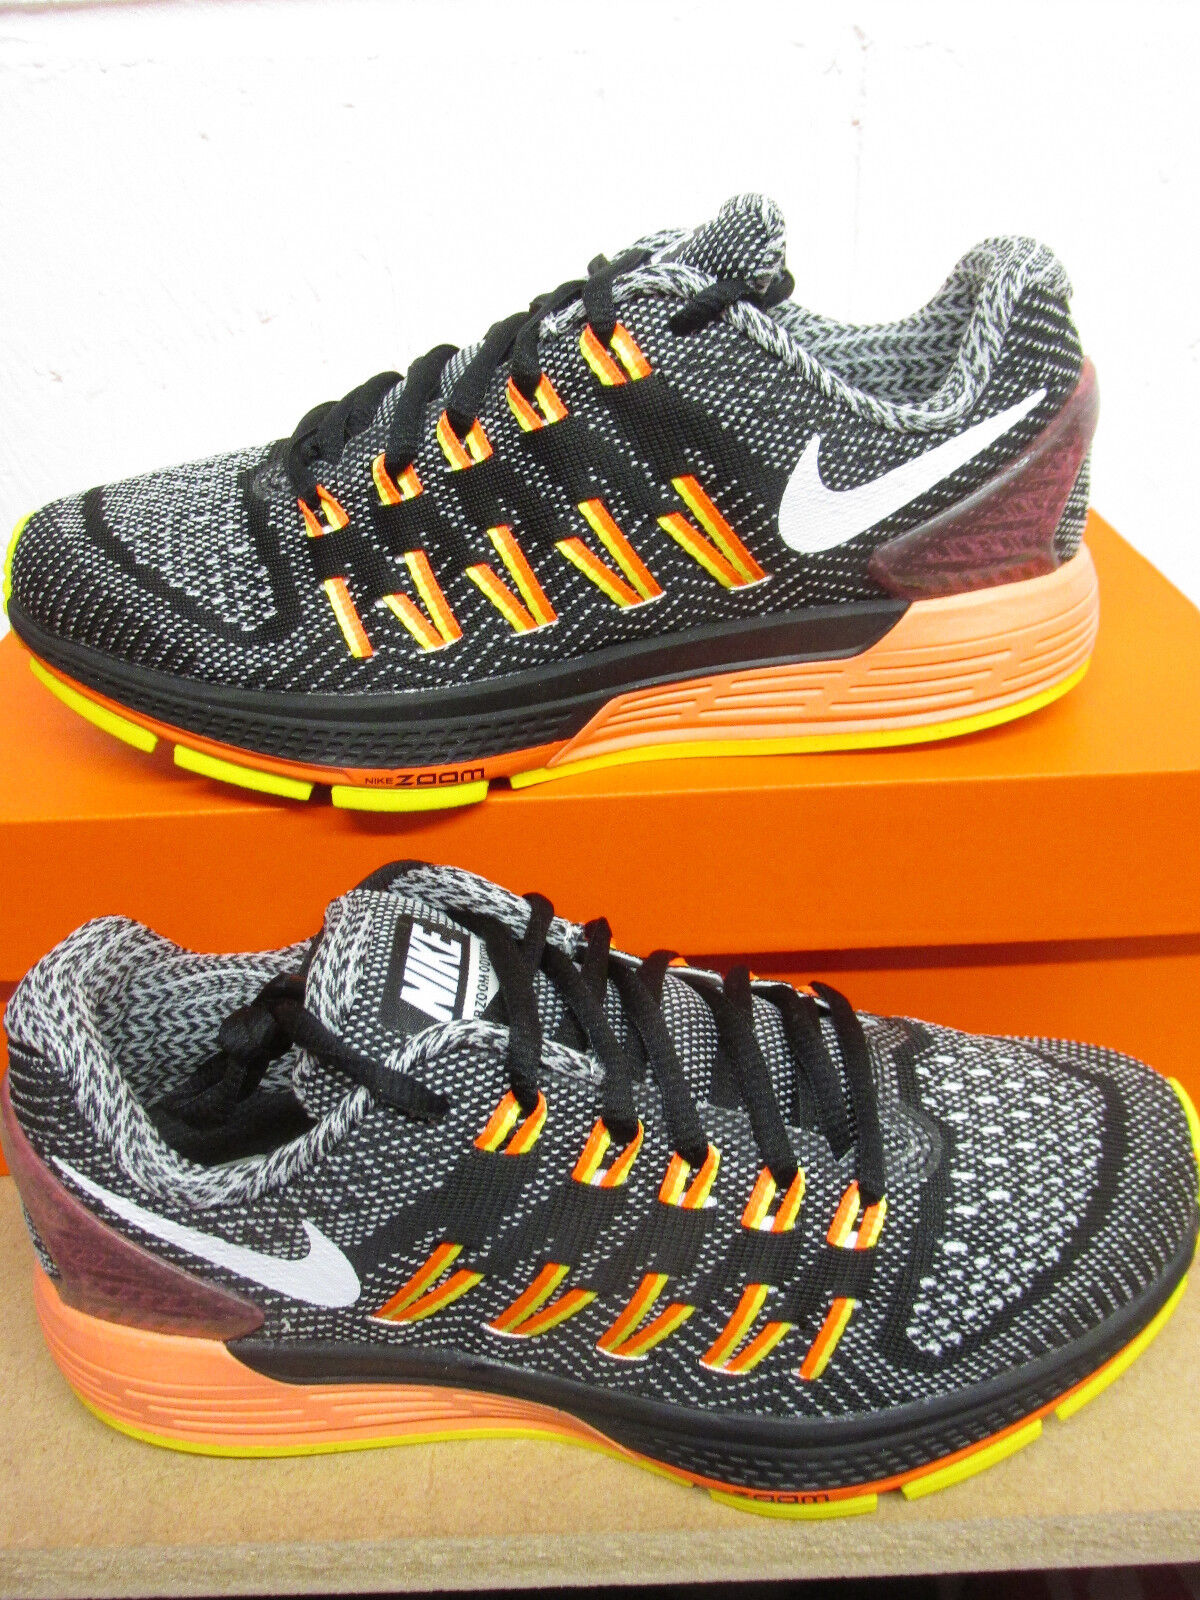 Nike Womens Air Zoom Odyssey Running Trainers Sneakers 749339 008 Sneakers Trainers Shoes 3497a2